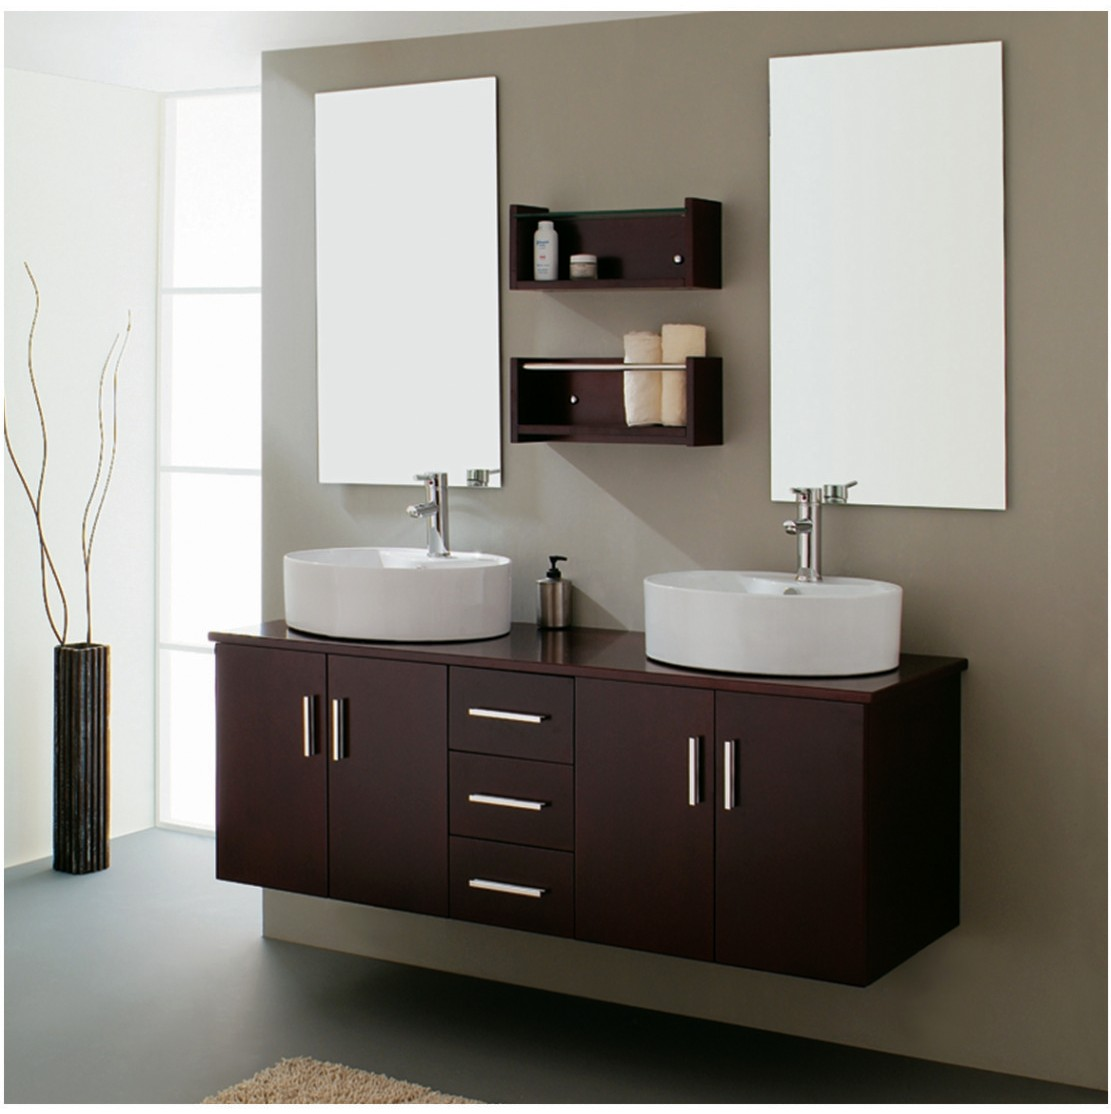 Modern bathroom double sink home decorating ideas for New bathroom design ideas